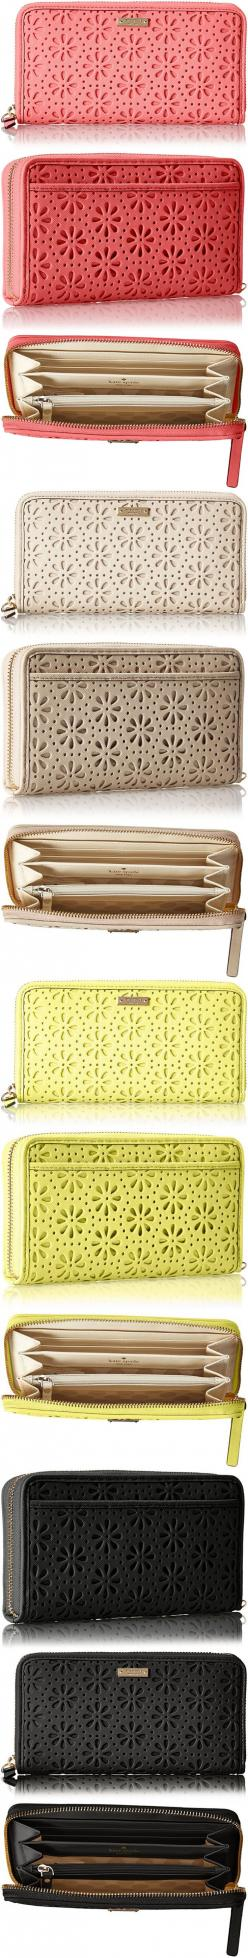 Kate Spade Purse #Kate #Spade #Purse, Wholesale Kate Spade Bags Only $59.99,Kate Spade Bag is on clearance sale,the world lowest price. The best Christmas gift: Kate Spade Bag, Lacey Wallet, Purses Wallet, Michael Kors Purse, Kate Spade Purse, Kate Spade